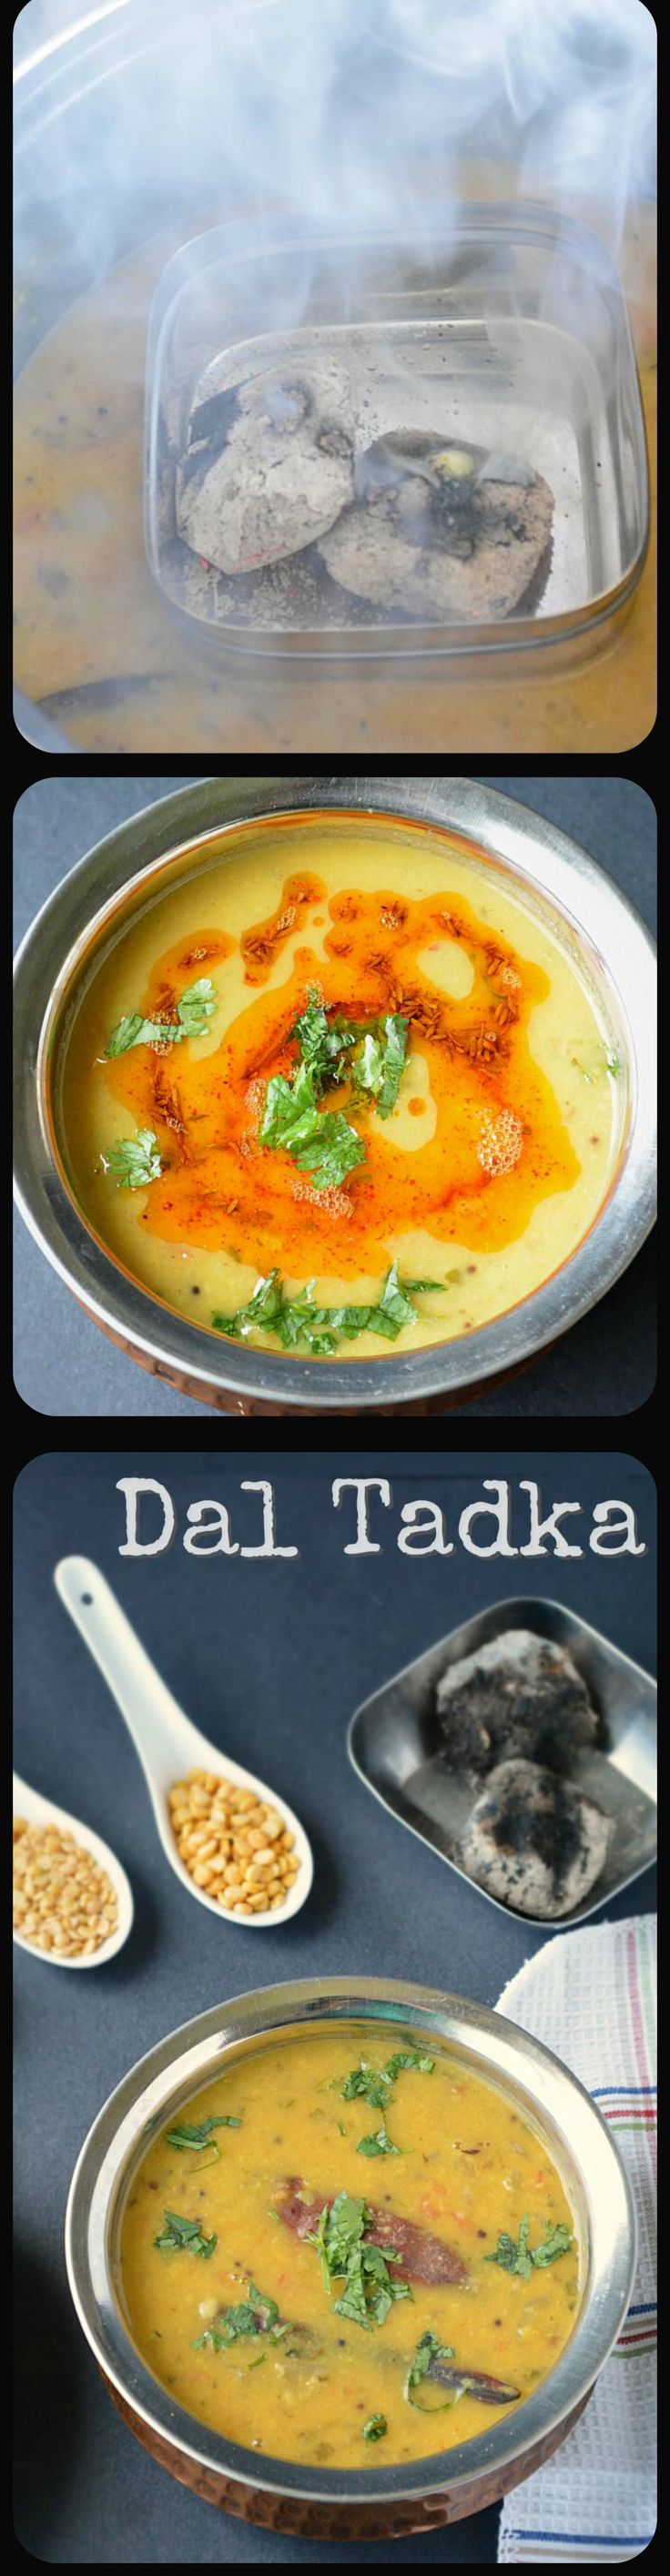 121 best indian food collection images on pinterest indian food yellow moong dal is boiled and cooked with onion tomatoes and aromatic indian food recipesindian forumfinder Gallery